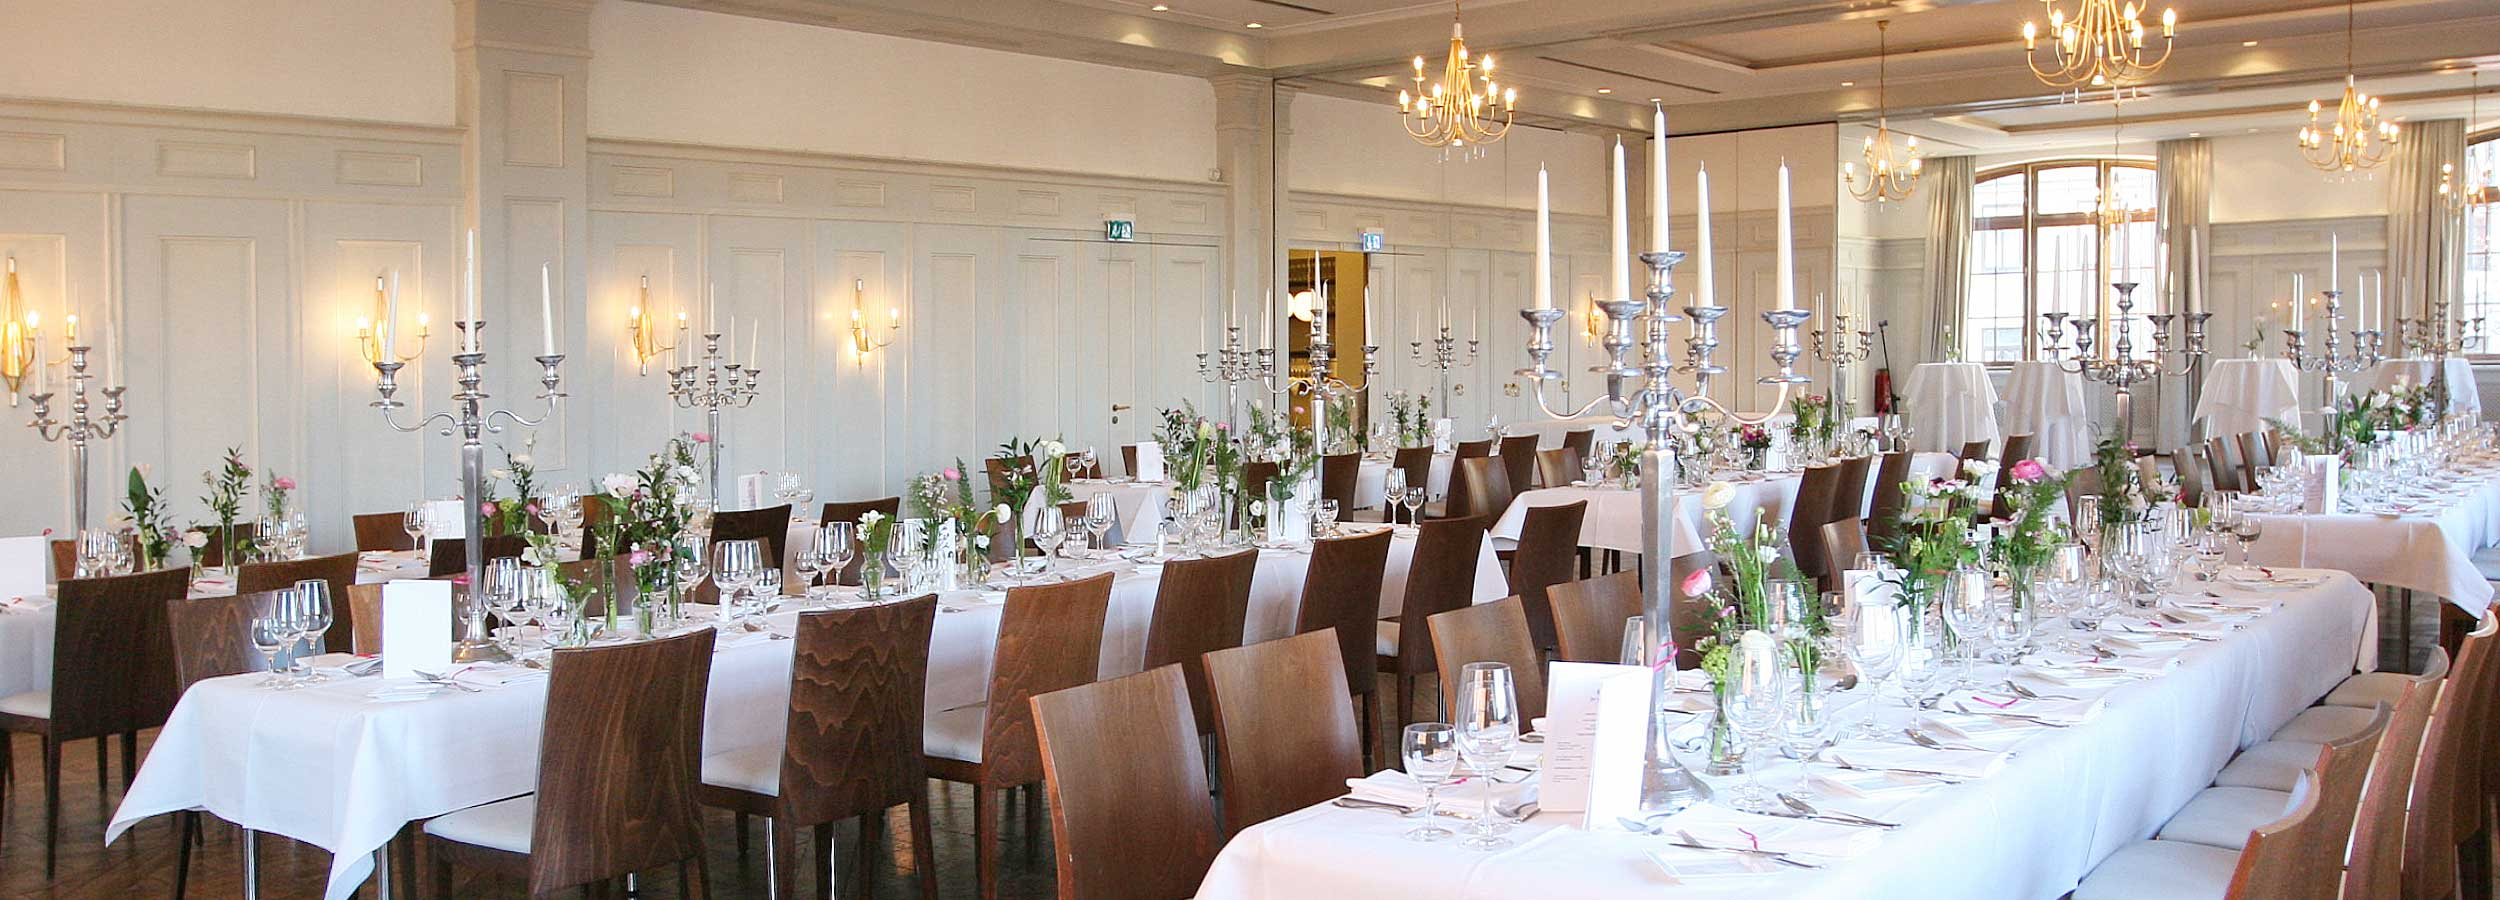 Ballroom for weddings and birthday parties and event hall for meetings, seminars and trainings in Munich city center